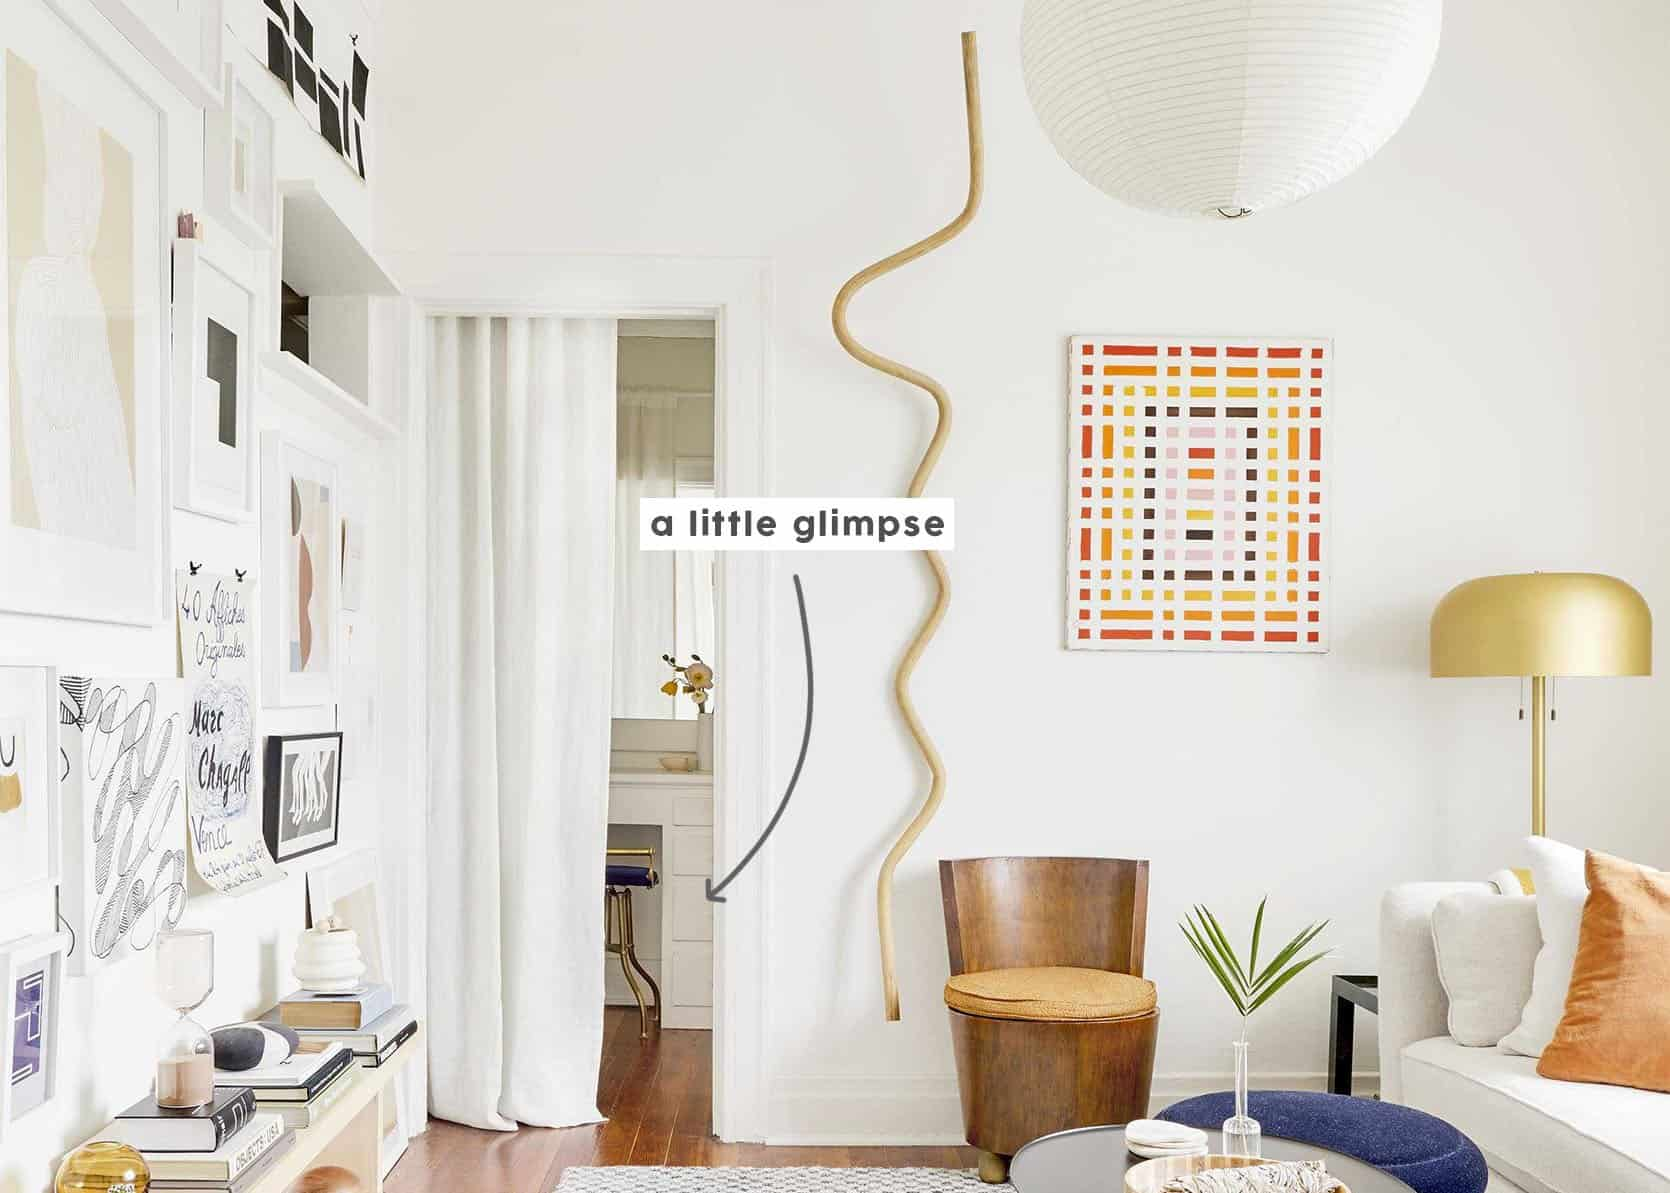 The Surprising Piece Of Furniture Gen Z Wants… Turns Out We Do Too